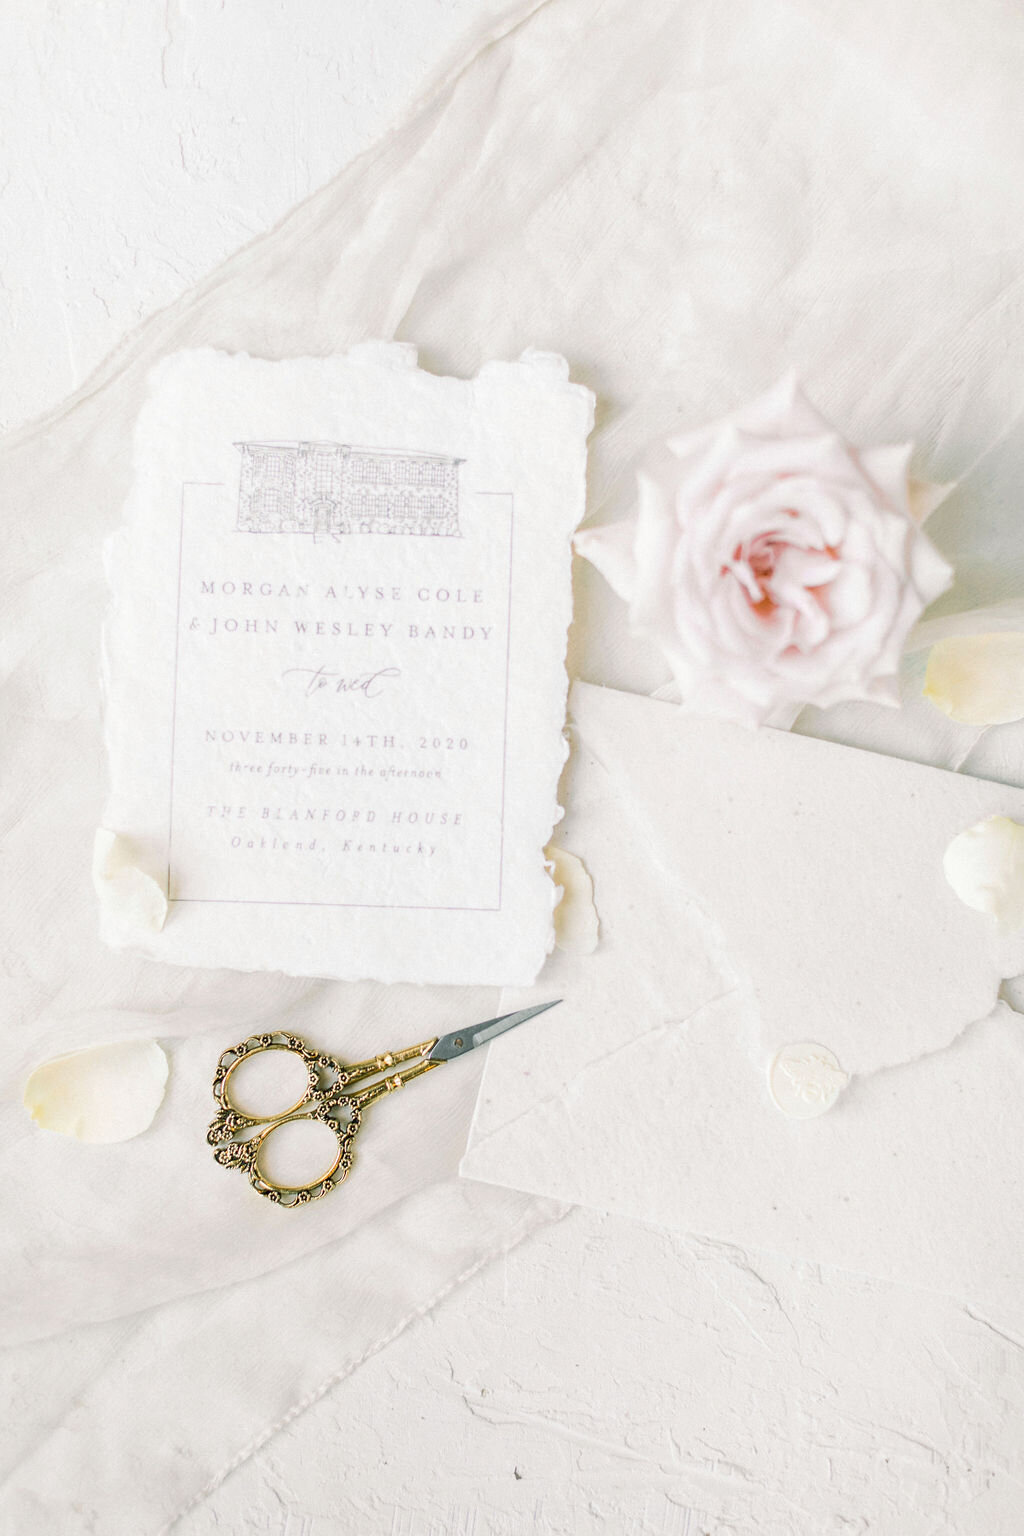 Fine Art Wedding Day Photography by Paige Michelle Photography